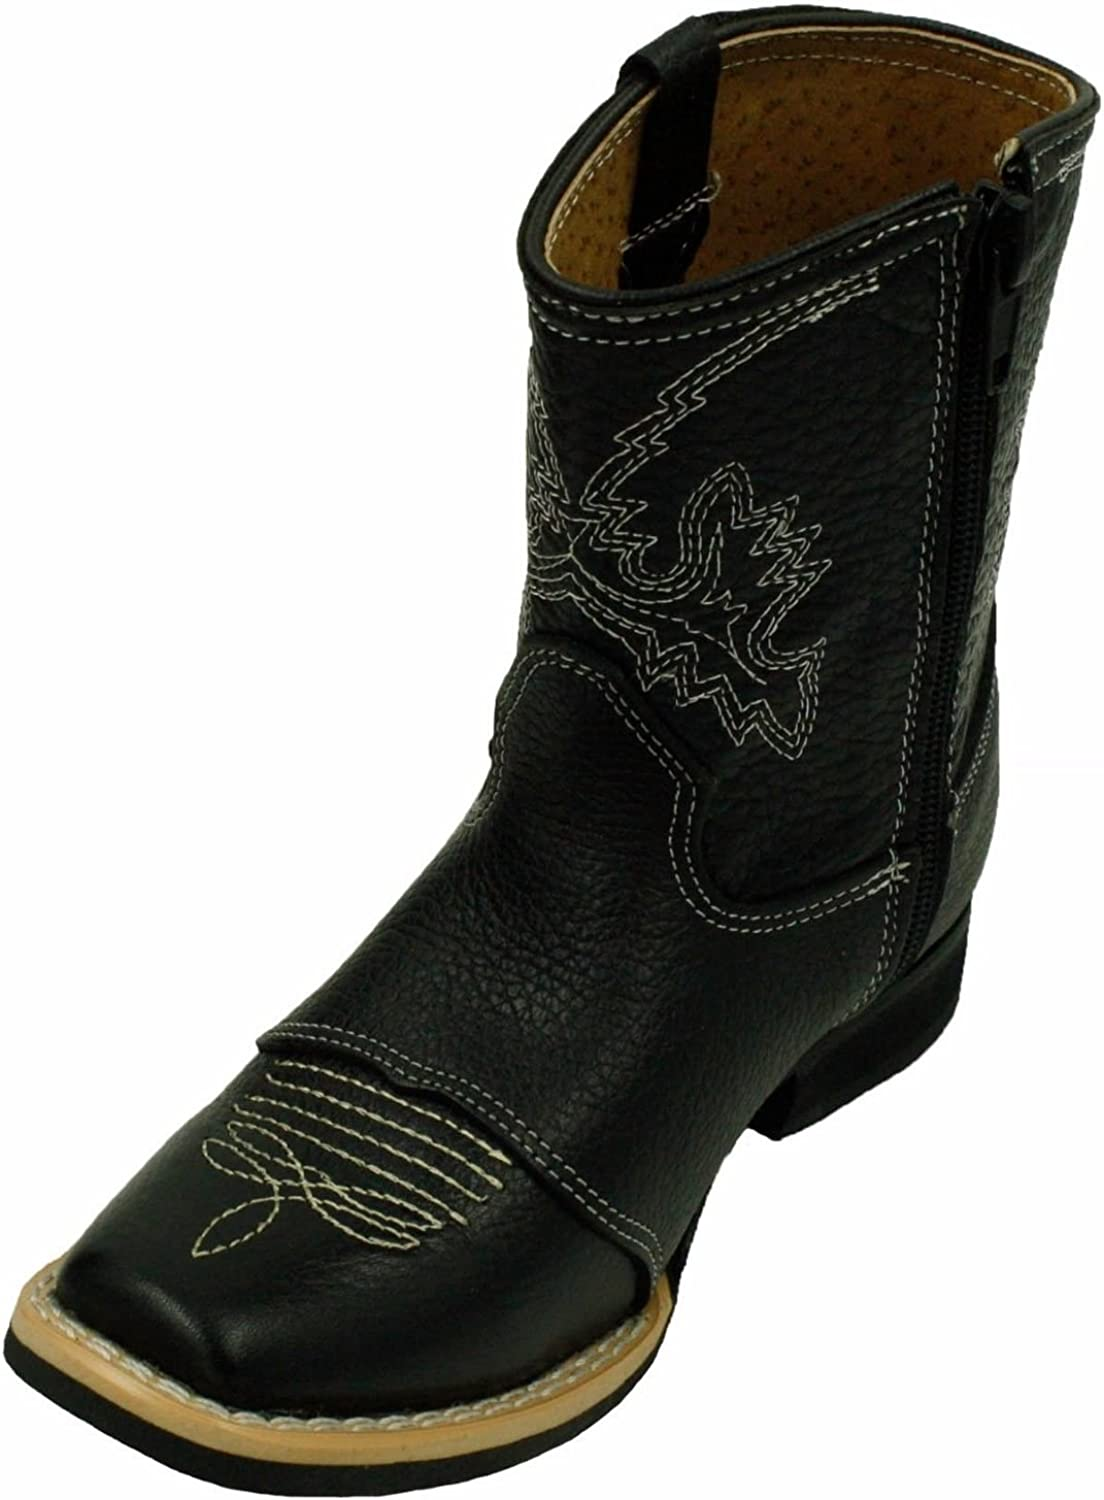 Kids Unisex Genuine Leather Western Side Boo Rodeo overseas Zipper Cowboy Max 67% OFF